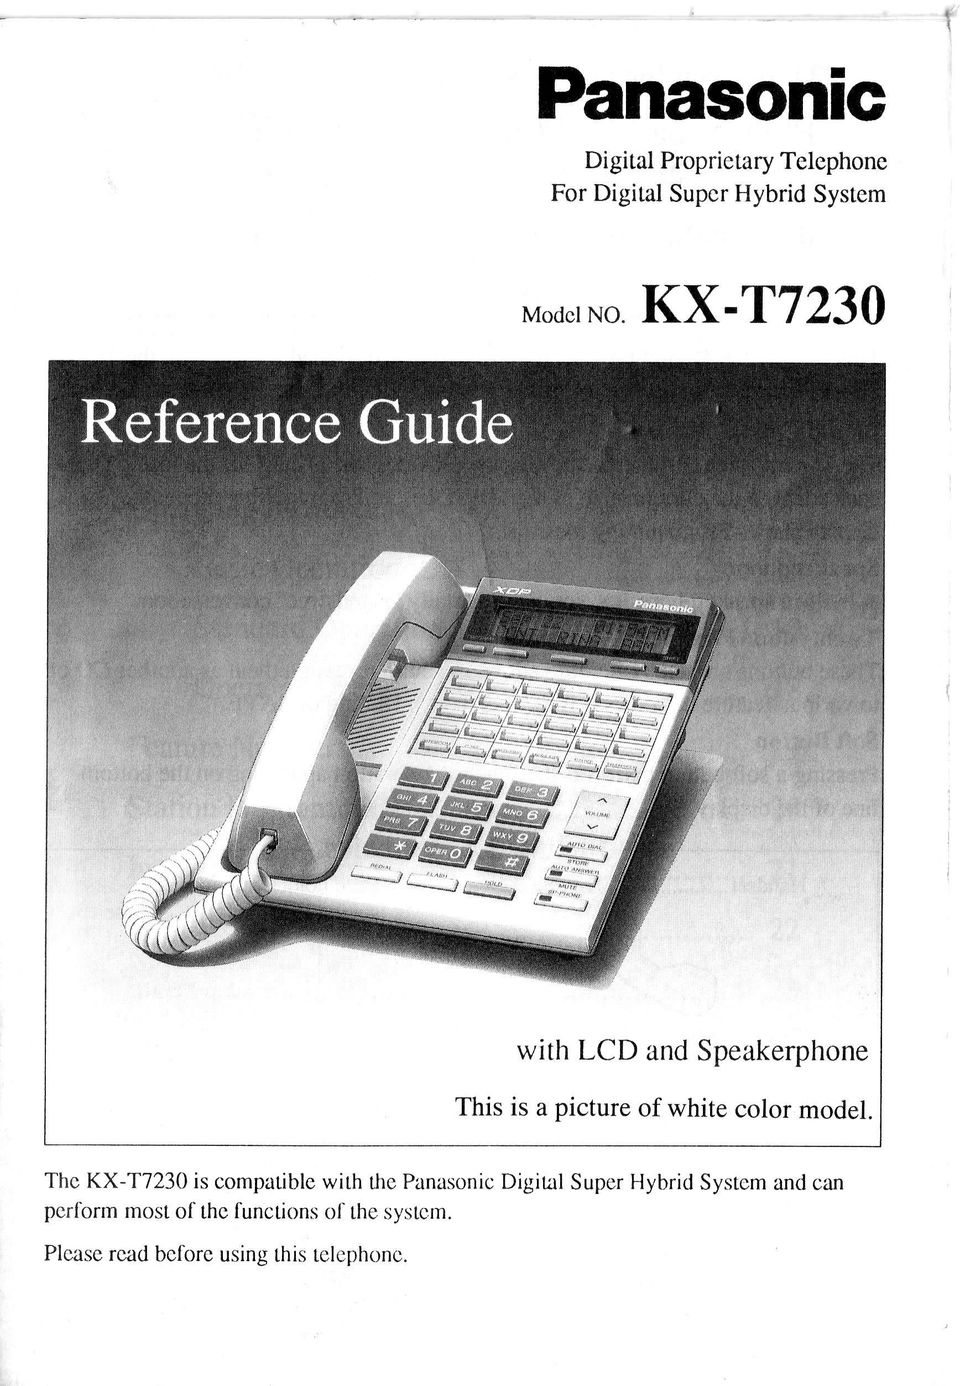 KX -T7230 Thc KX-T7230 is compatible with the Panasonic